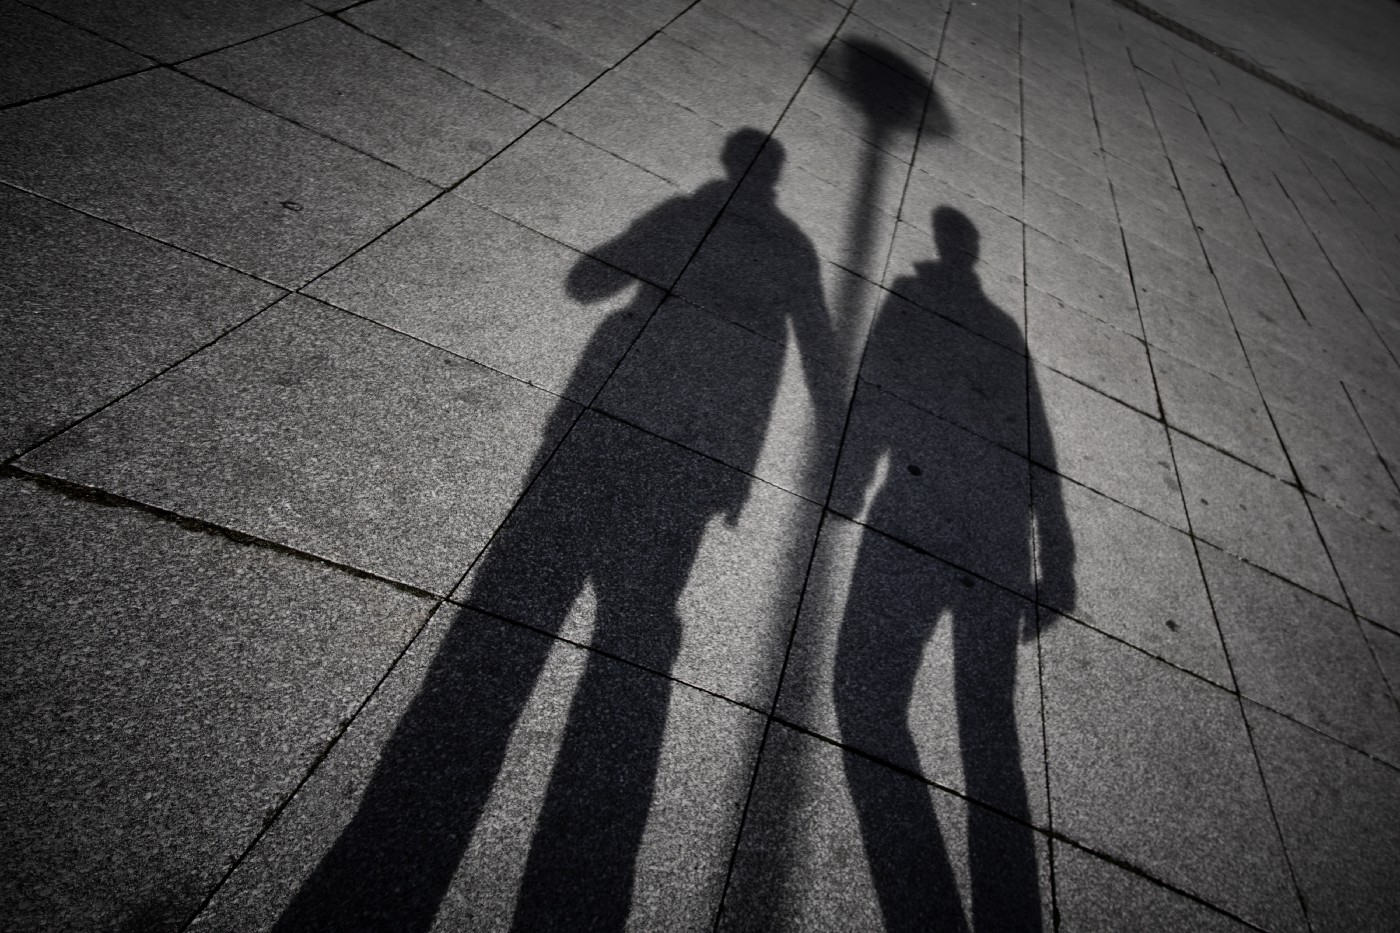 A silhouette of two men holding hands while leaning against a streetlight is projected onto the gray pavement below.